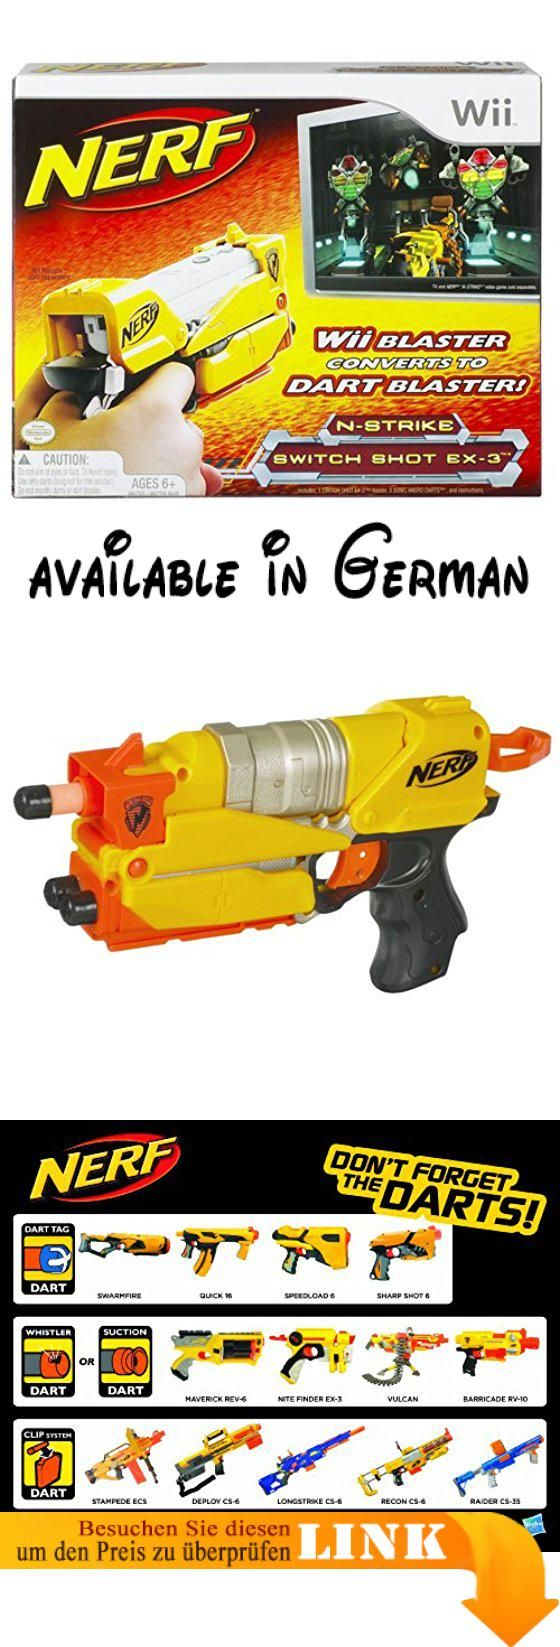 Nerf N-Strike Switch Shot EX-3m (Nintendo Wii) [Import UK]. Spielzeugwaffe #Toy #TOYS_AND_GAMES